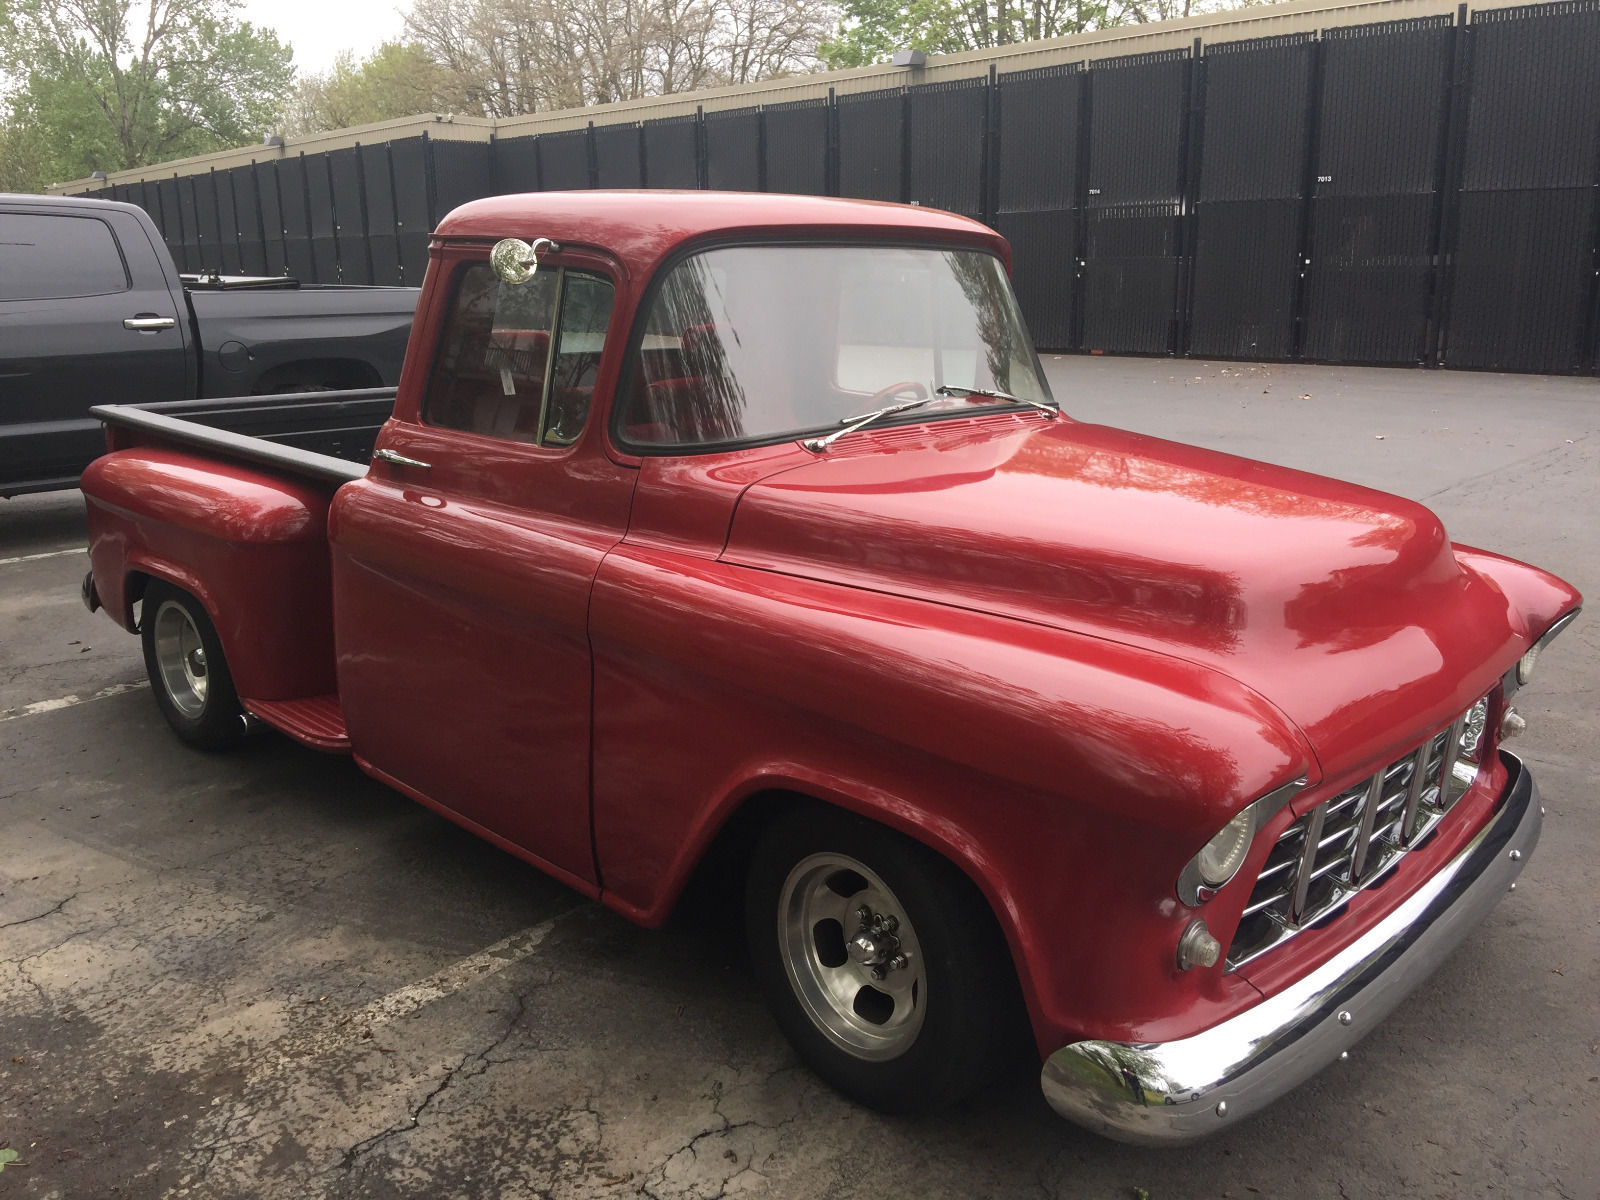 tastefully customized 1956 chevrolet pickups custom truck for sale. Black Bedroom Furniture Sets. Home Design Ideas